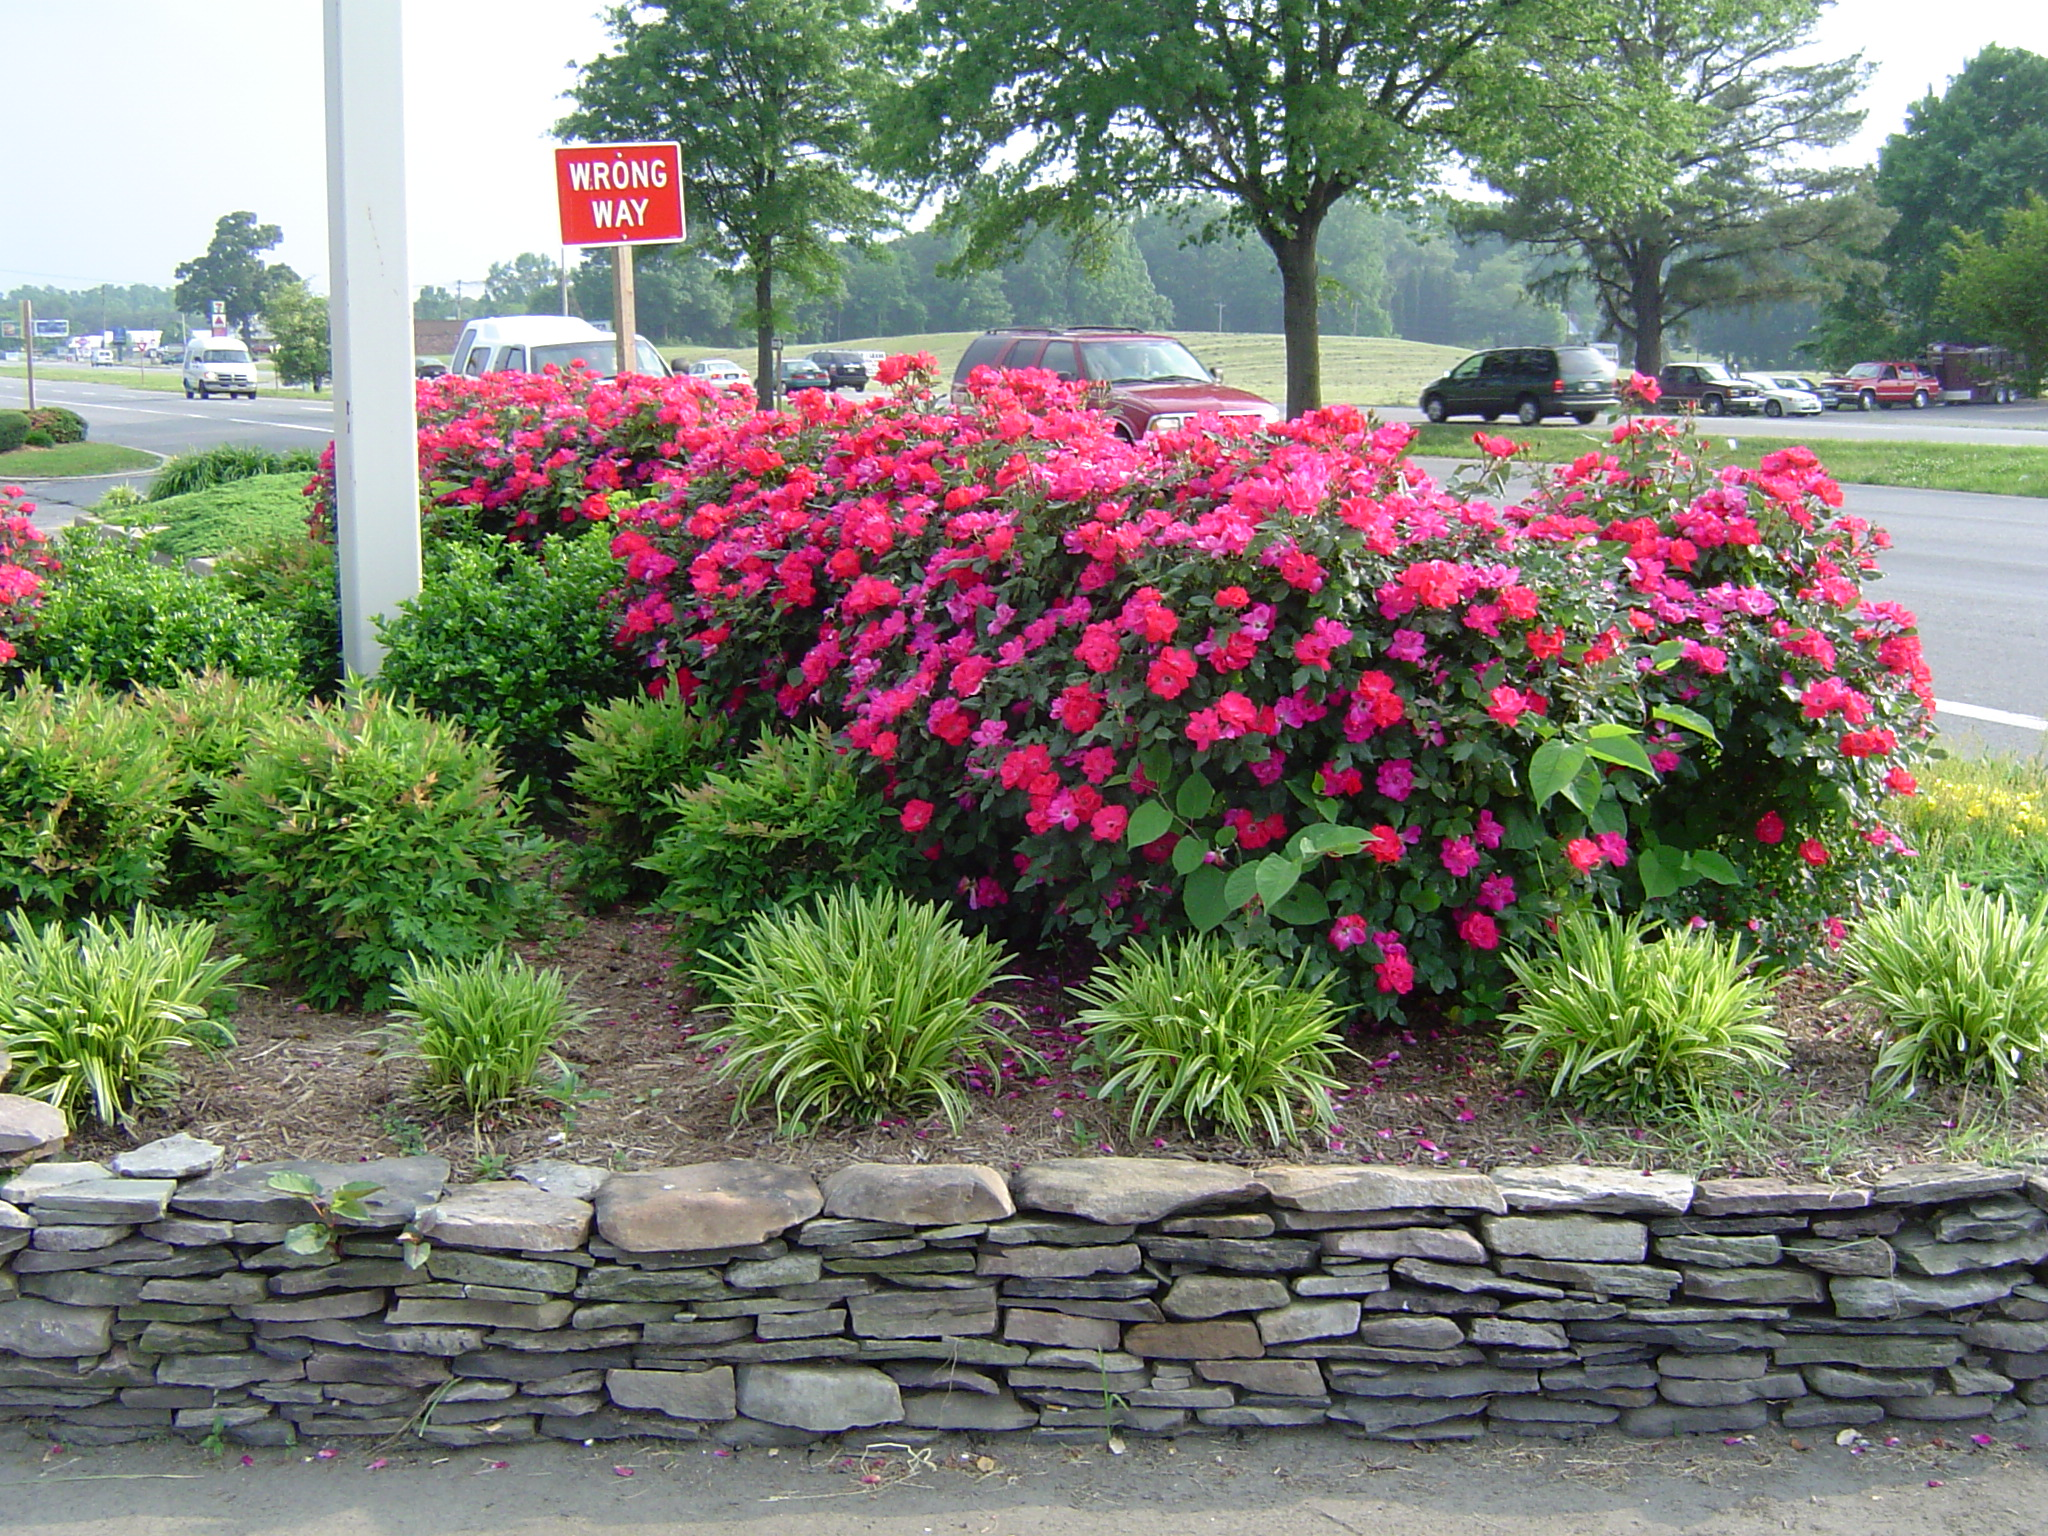 Landscaping Ideas Knockout Roses: Rose garden ideas pictures native ...